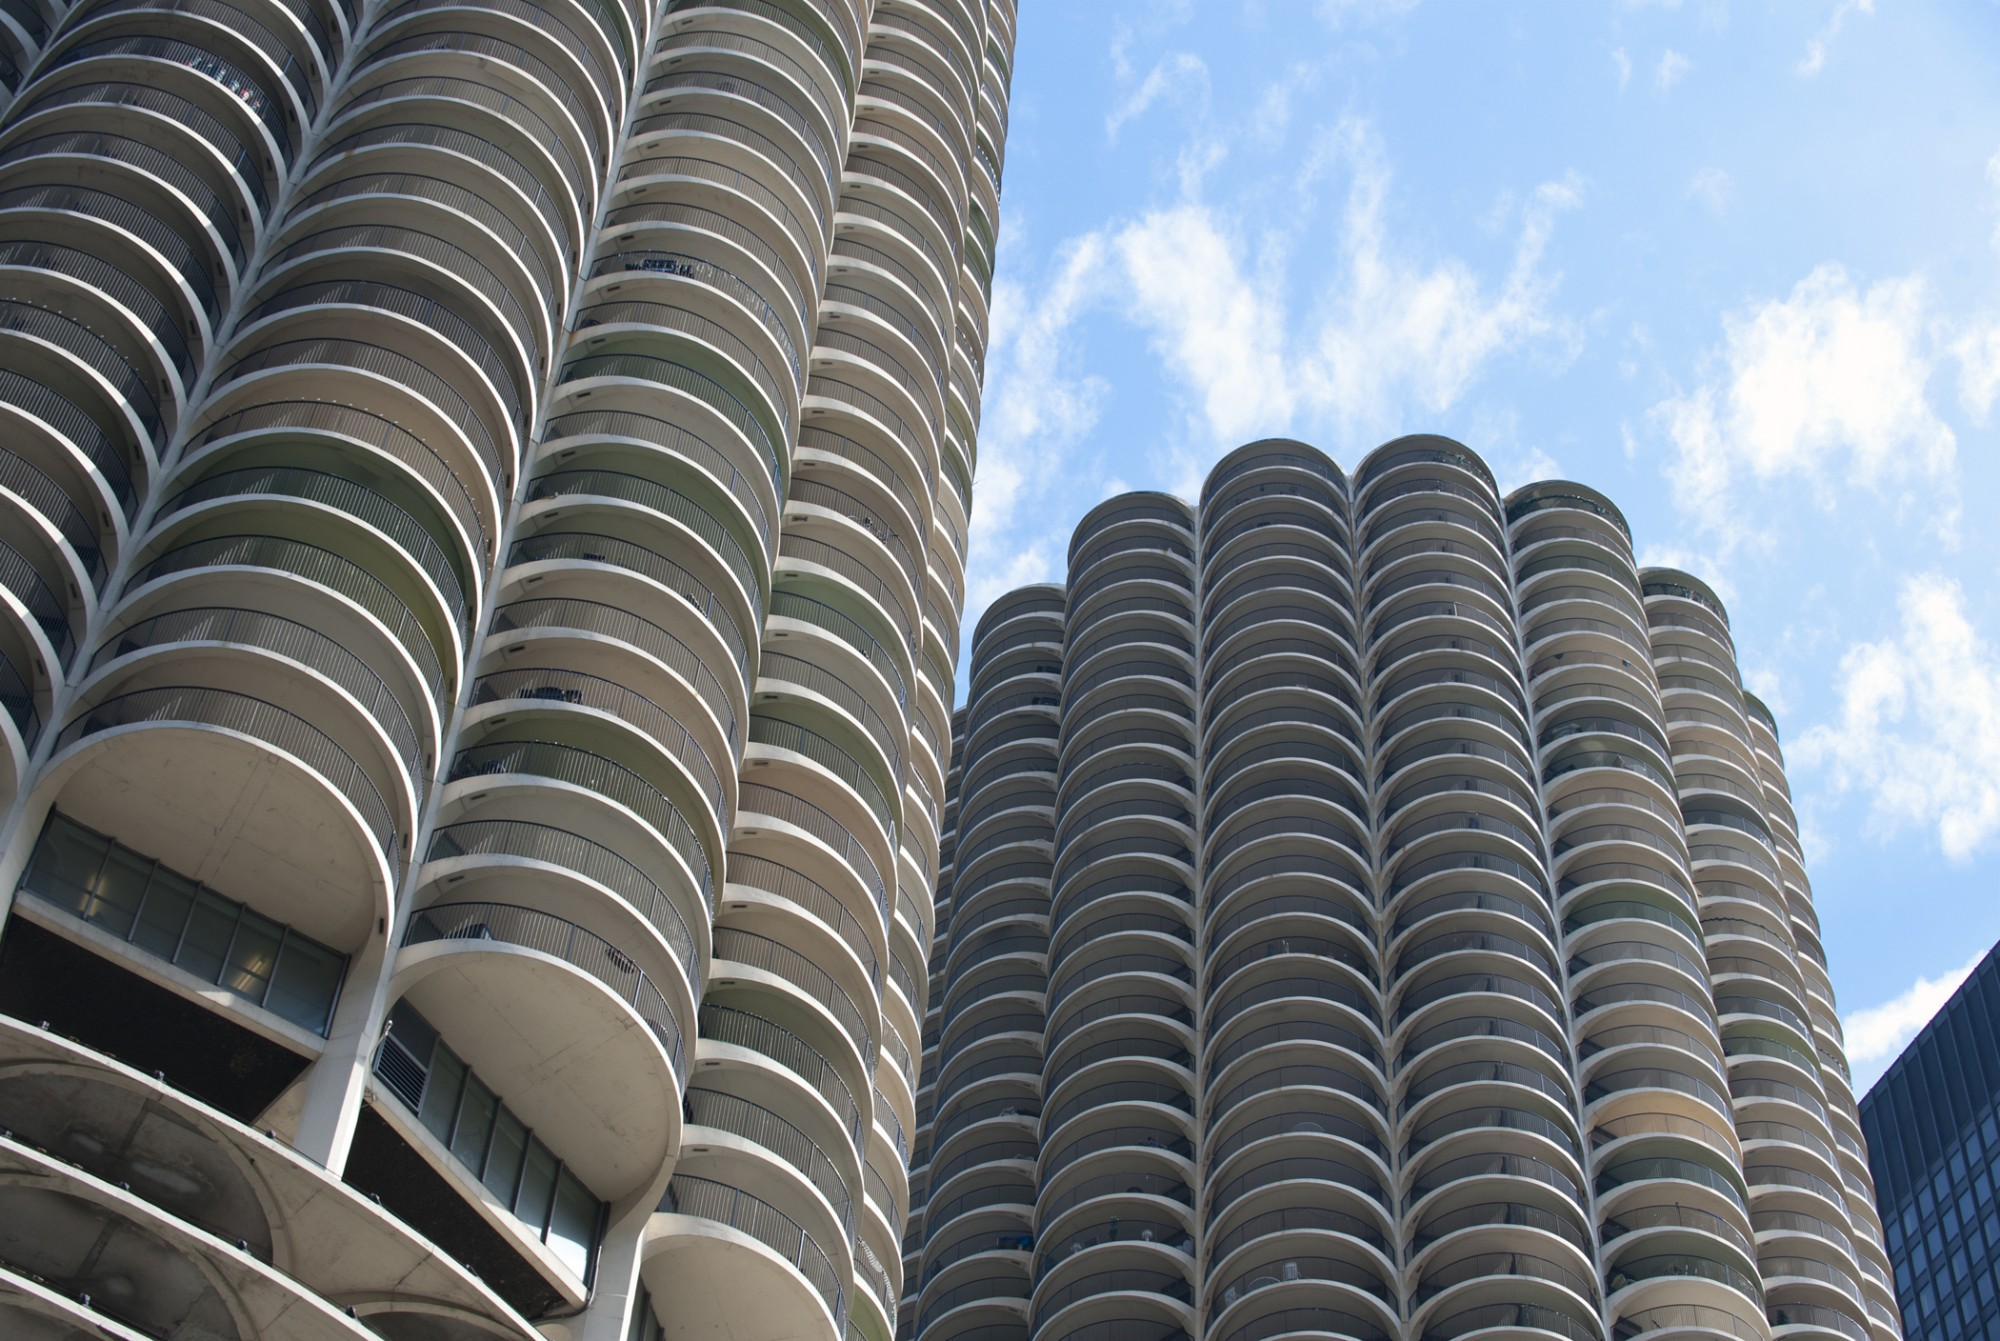 Chicago Architecture At The Movies · Chicago Architecture